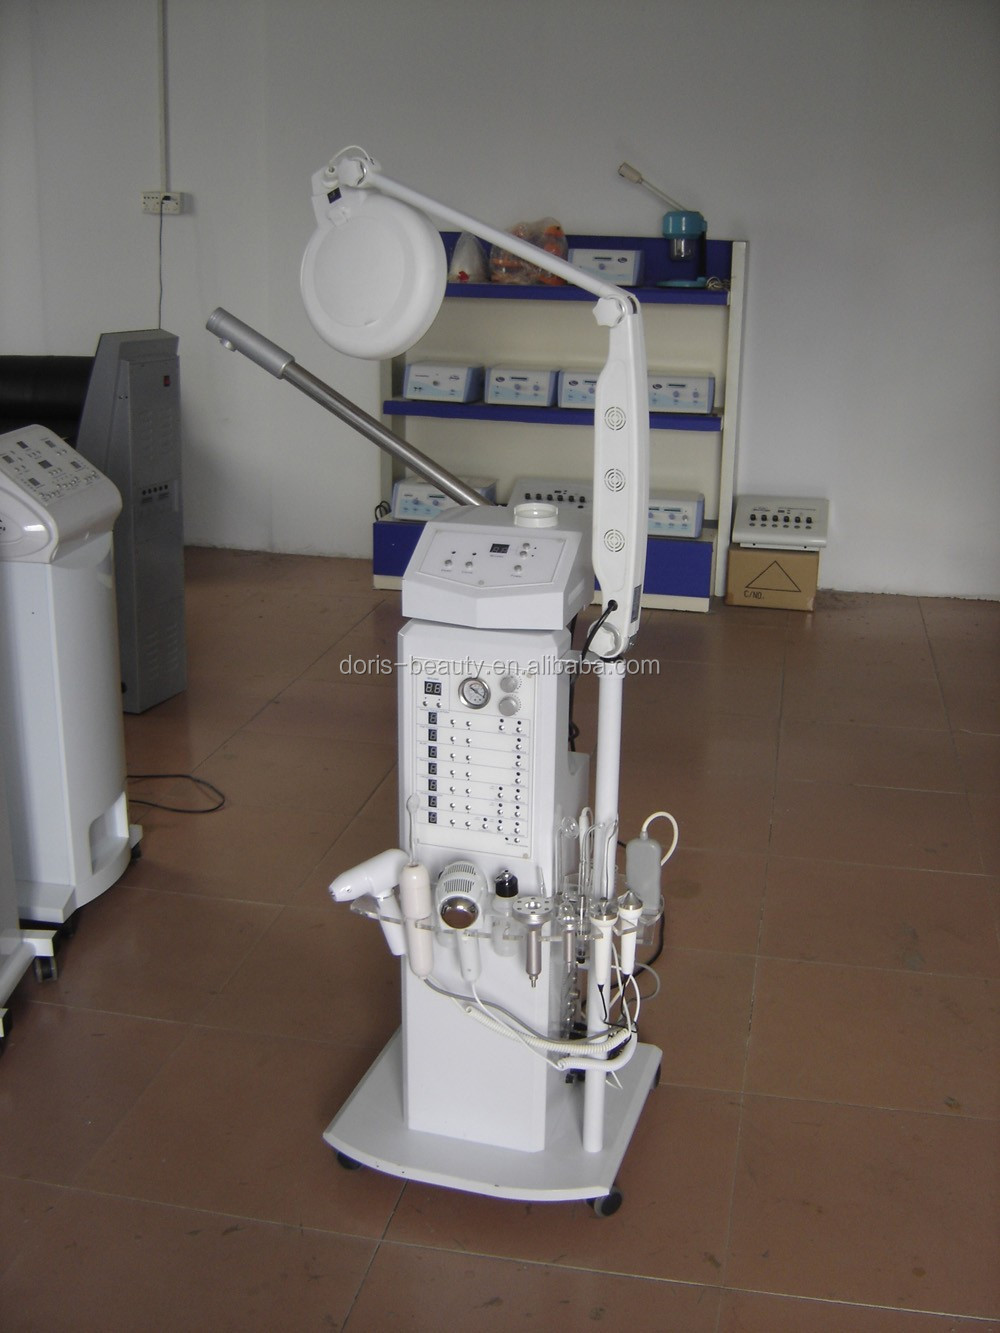 Cheap price used beauty salon equipment for sale do mu03 for Salon equipment prices